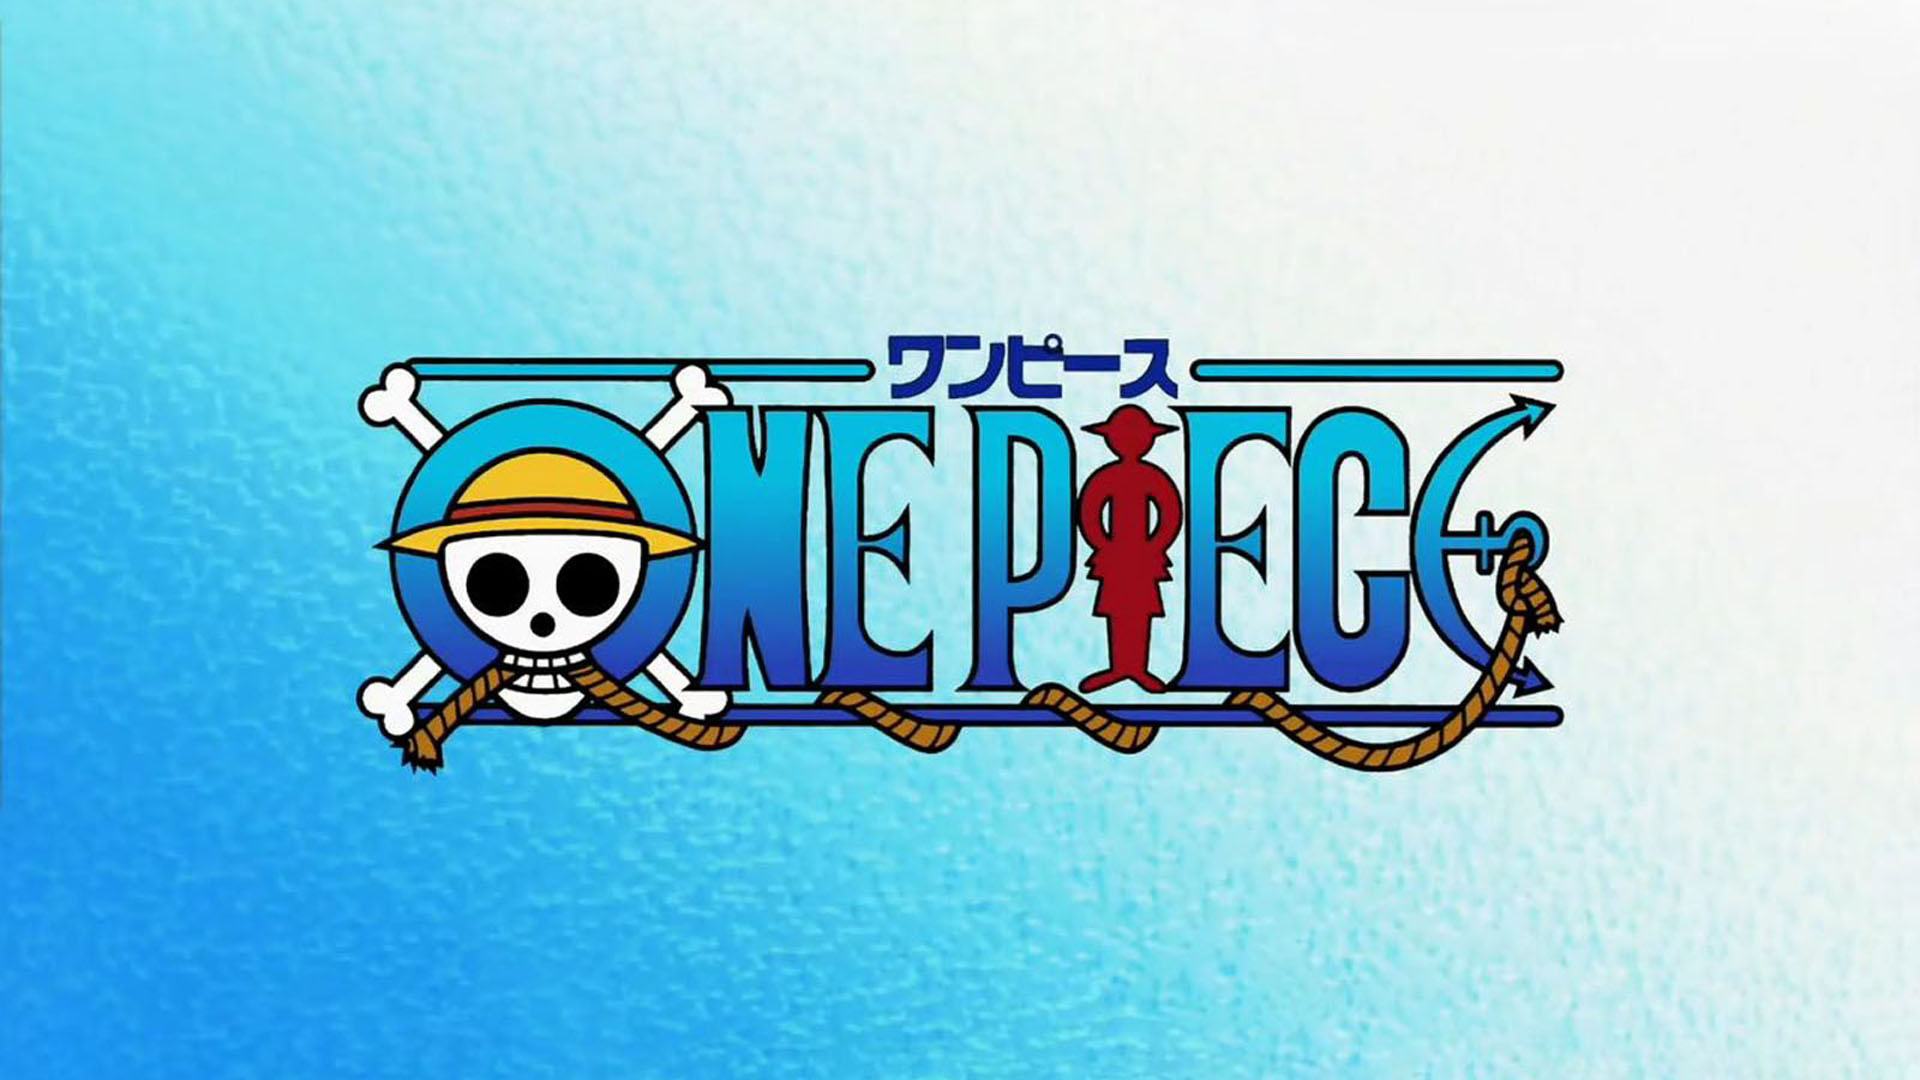 one piece wallpaper 1920x1080 HD 1920x1080